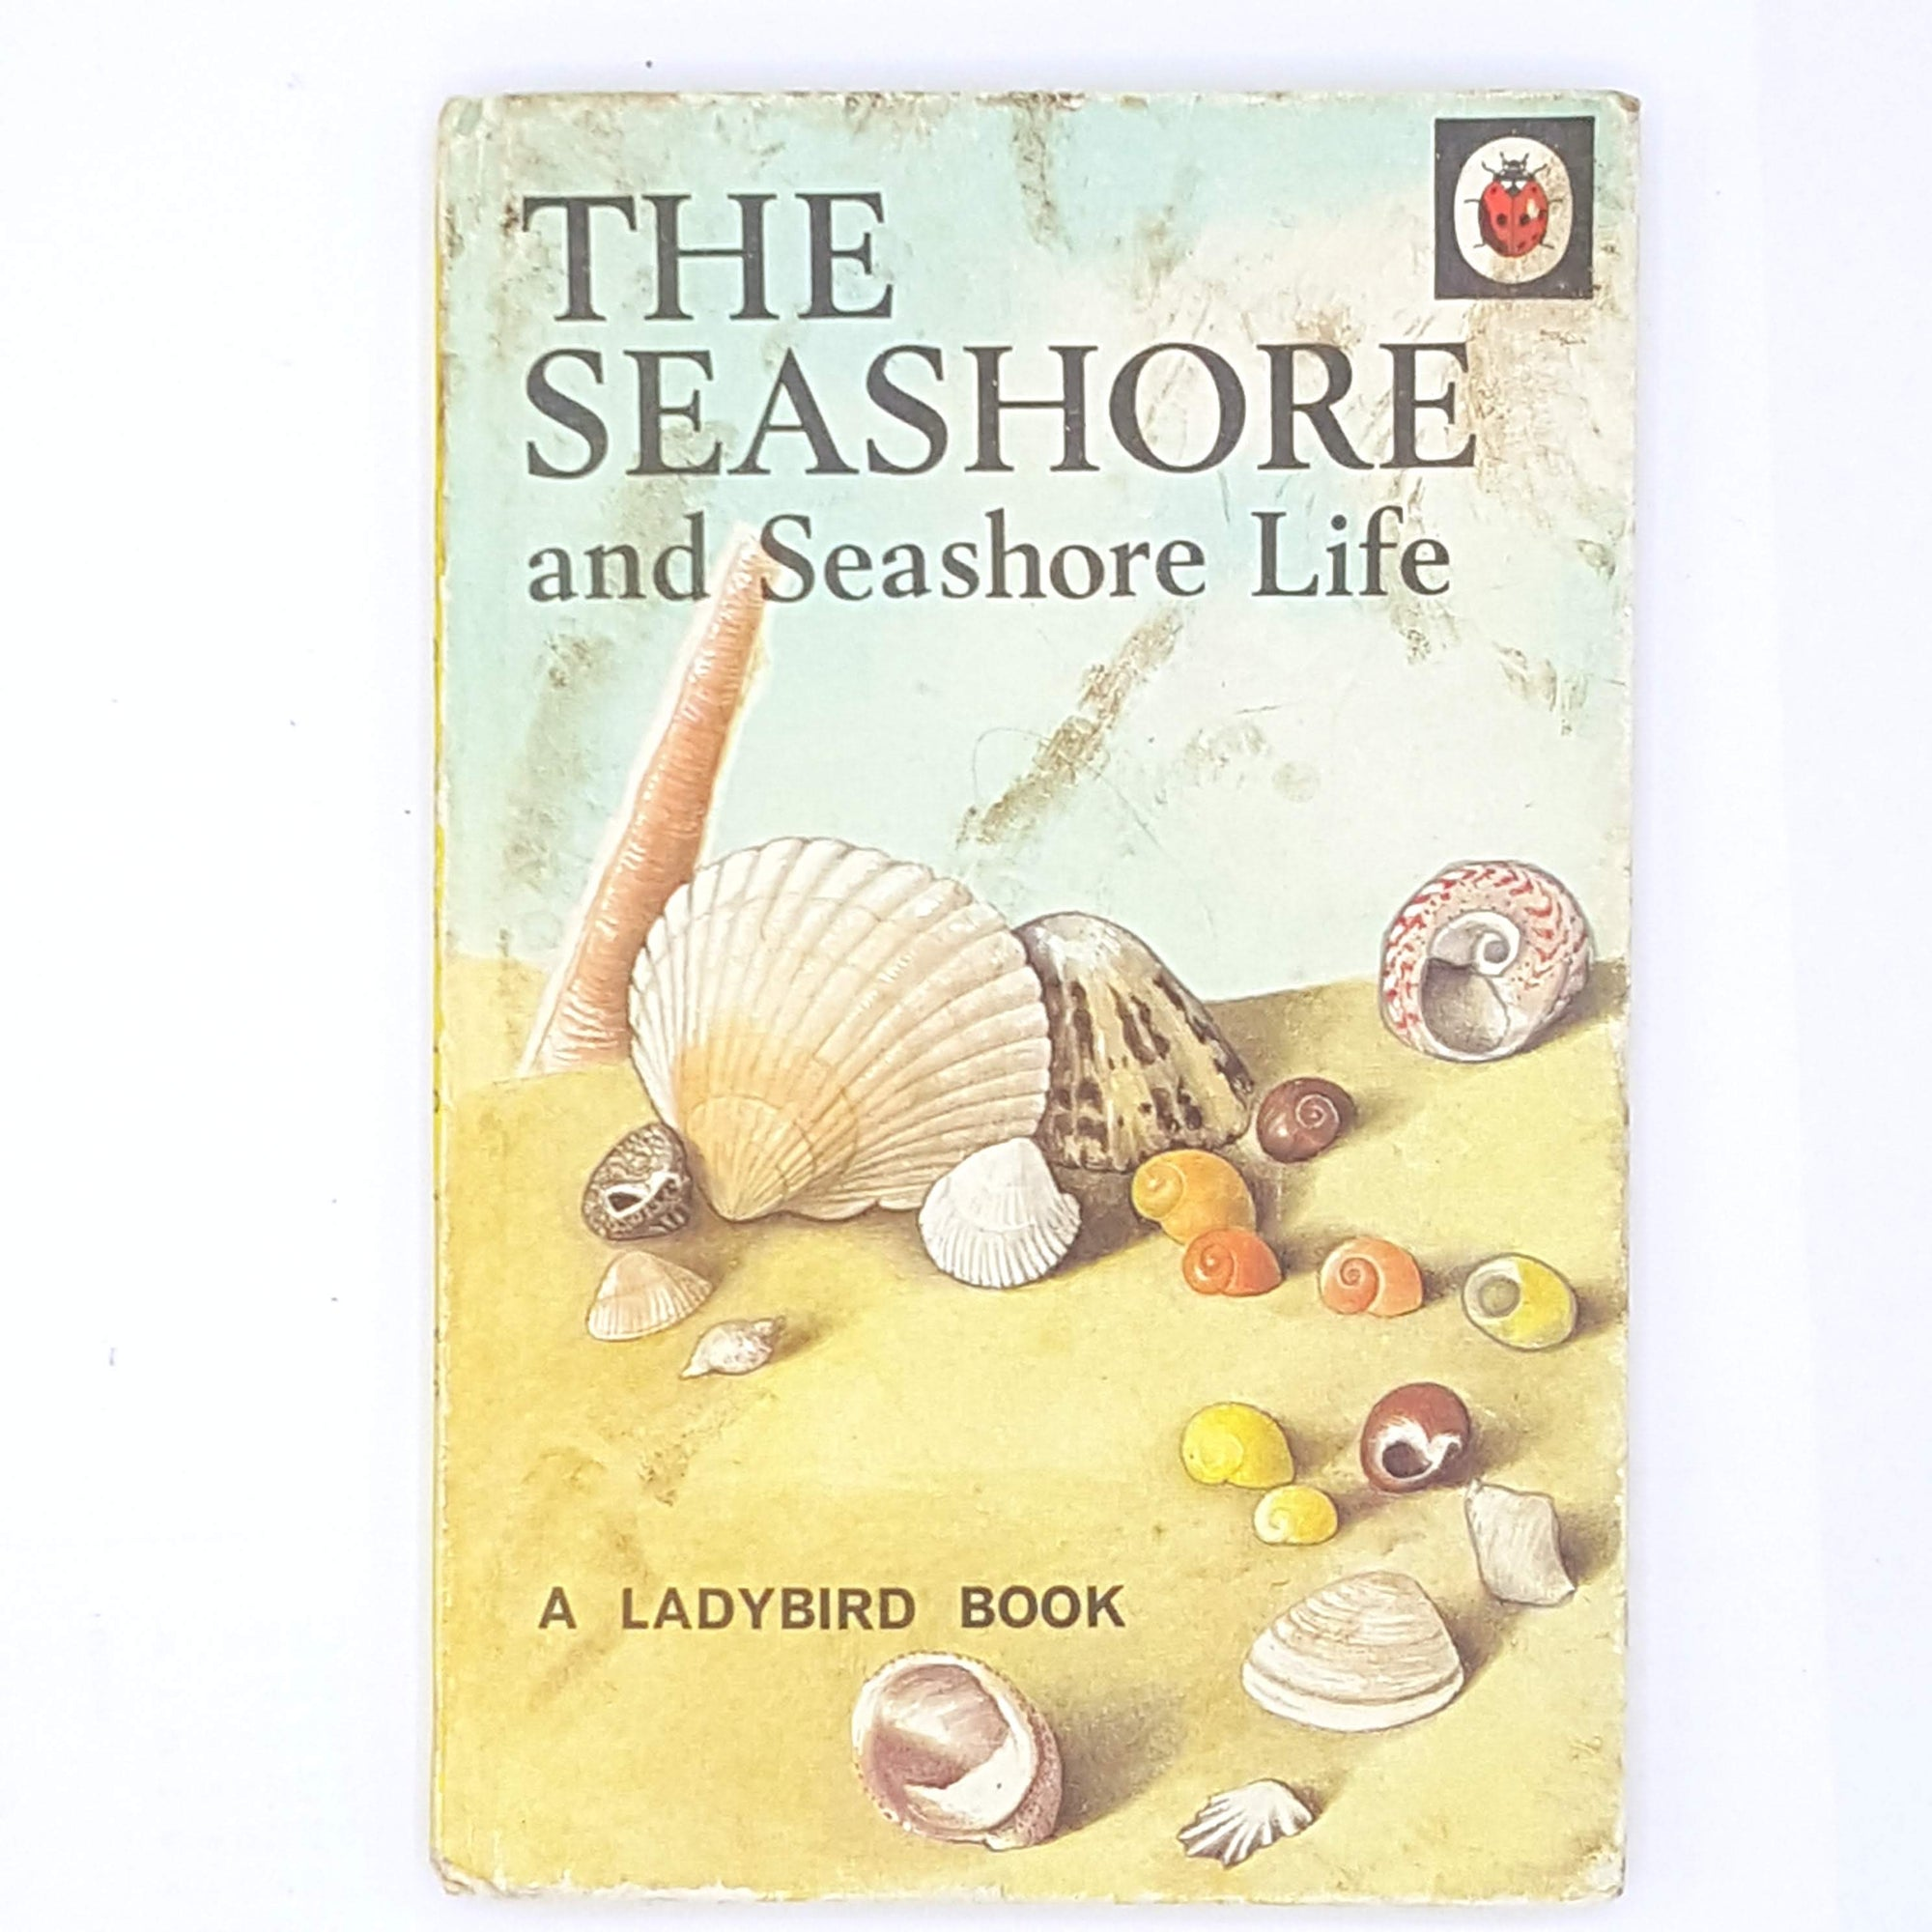 Ladybird: The Seashore and Seashore Life 1964